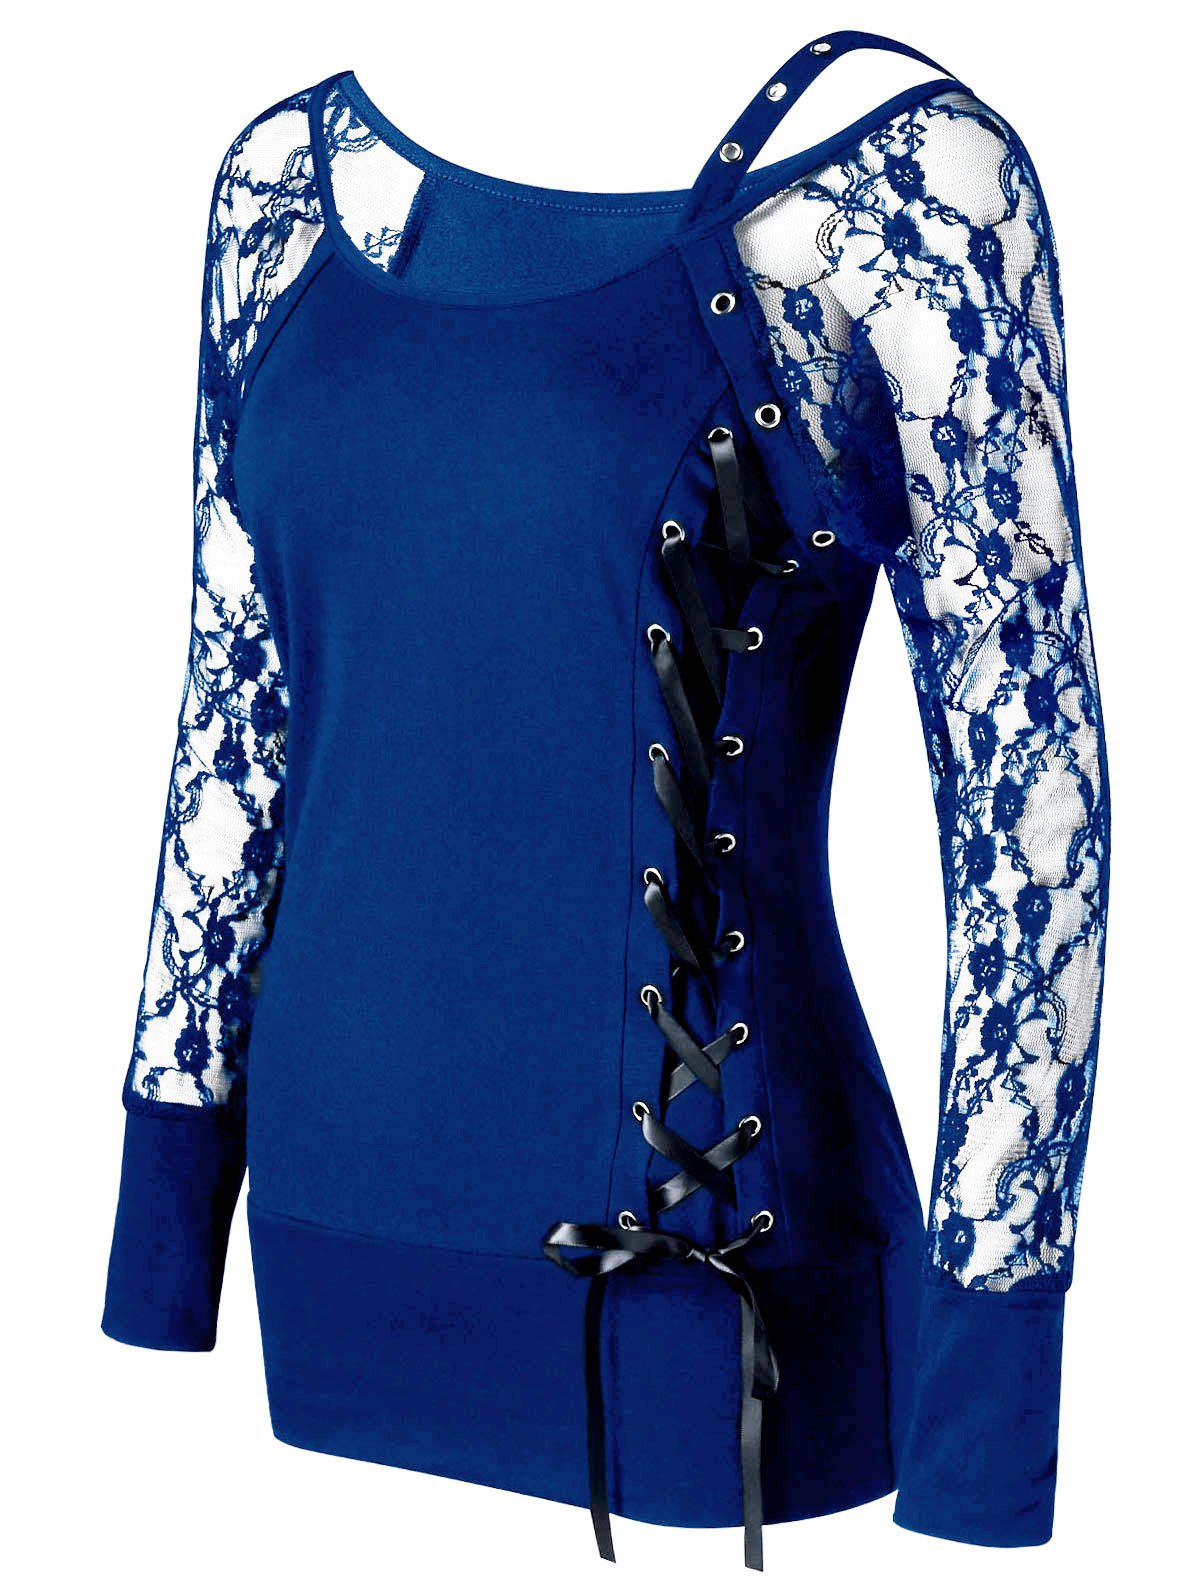 Raglan Sleeve Fitted Lace Up TopWOMEN<br><br>Size: M; Color: BLUE; Material: Polyester,Spandex; Shirt Length: Regular; Sleeve Length: Full; Collar: Scoop Neck; Style: Fashion; Embellishment: Lace; Pattern Type: Solid; Season: Fall,Spring,Summer; Weight: 0.2400kg; Package Contents: 1 x Top;